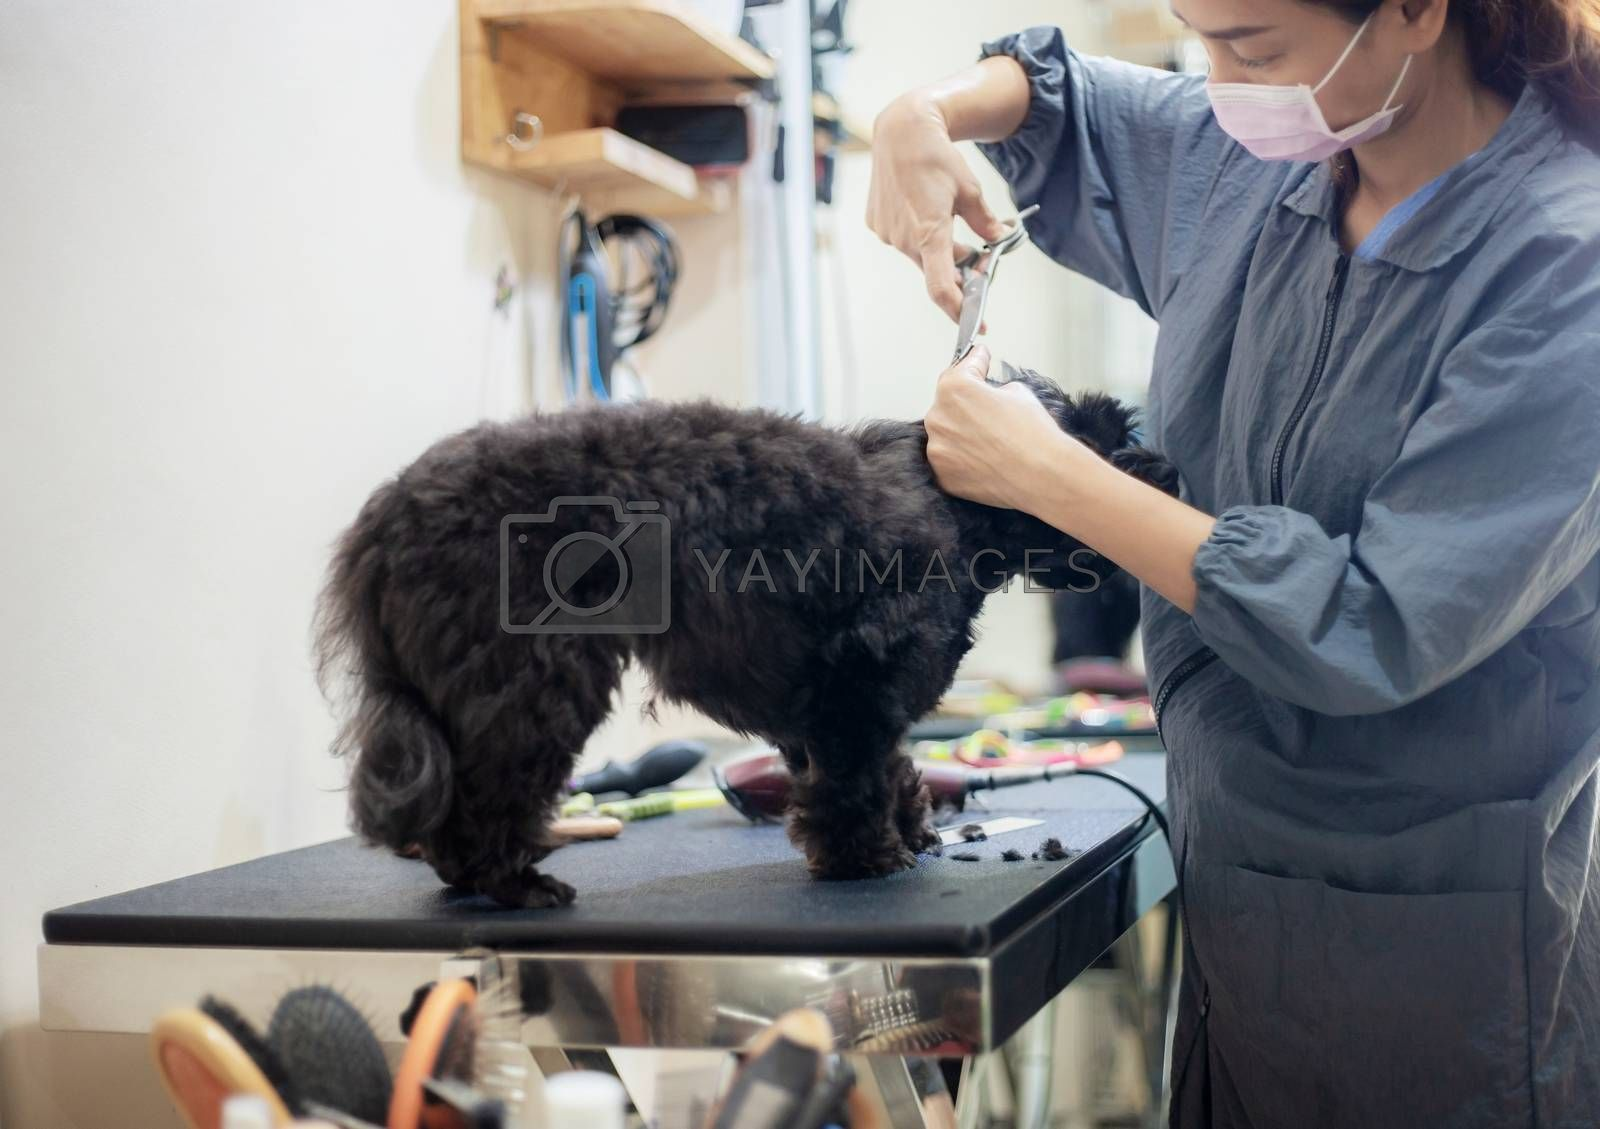 Woman are cutting hair a dog in pet shop.